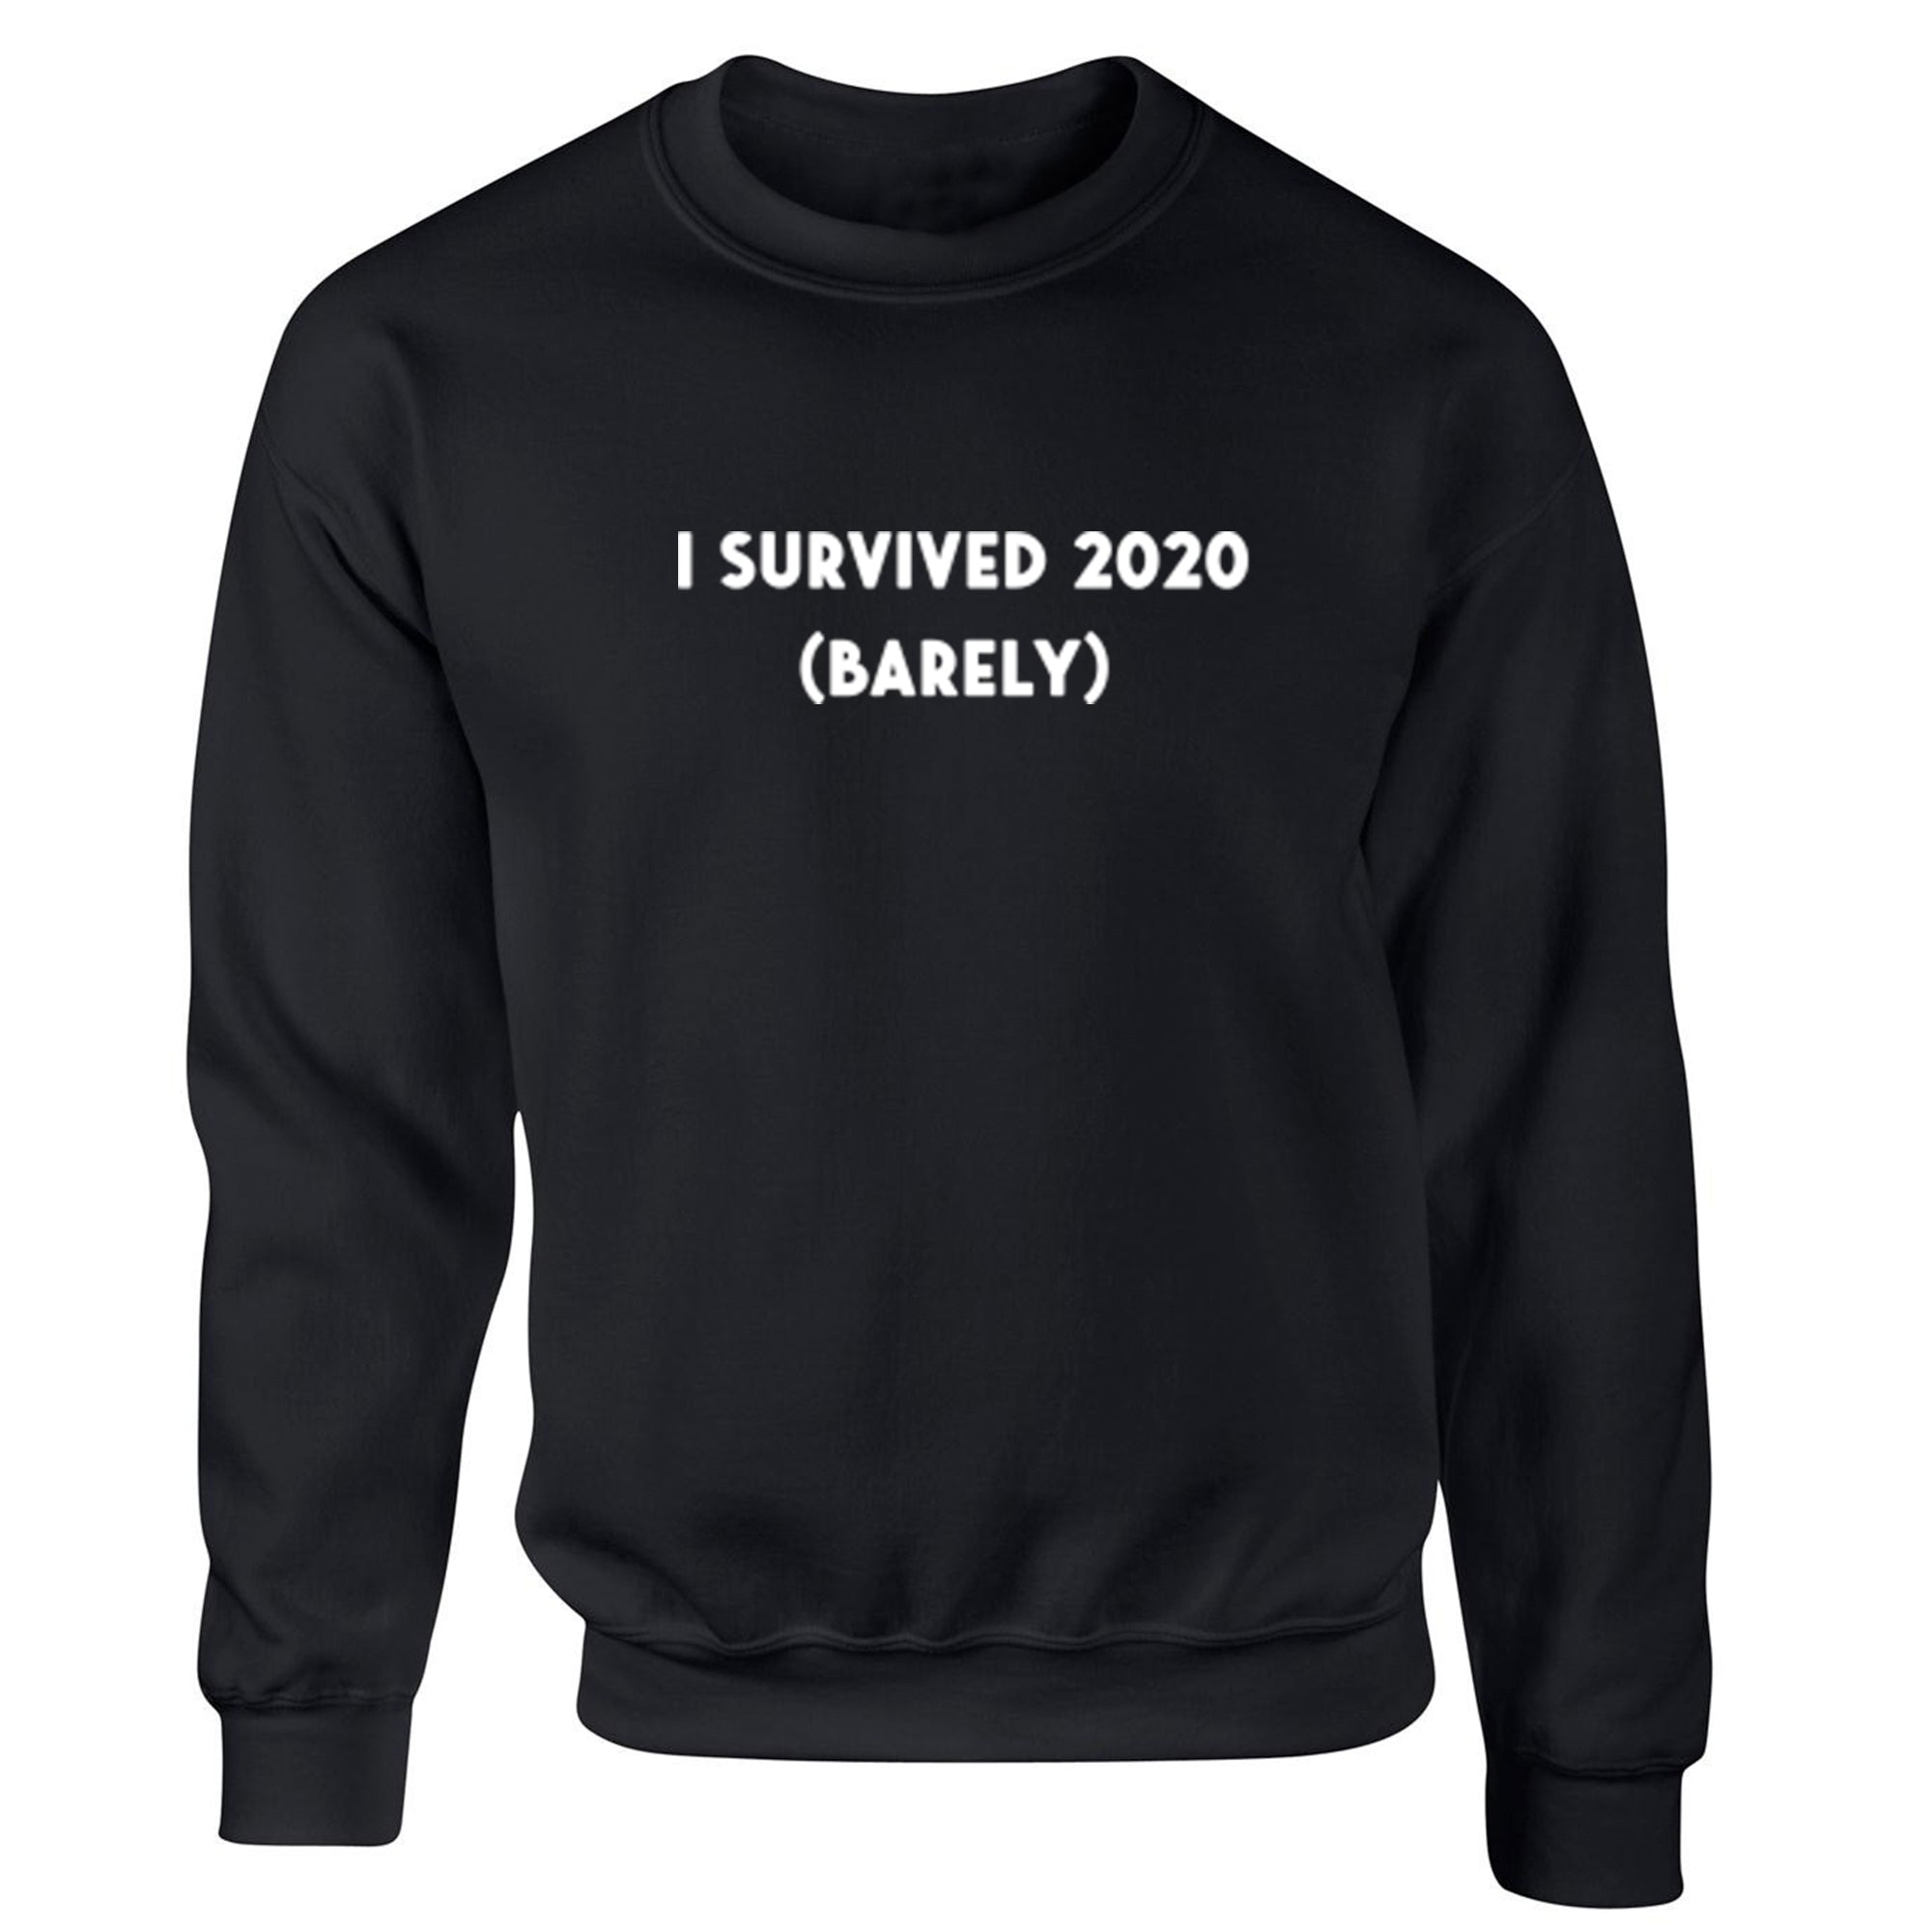 I Survived 2020 (Barely) Unisex Jumper S1139 - Illustrated Identity Ltd.